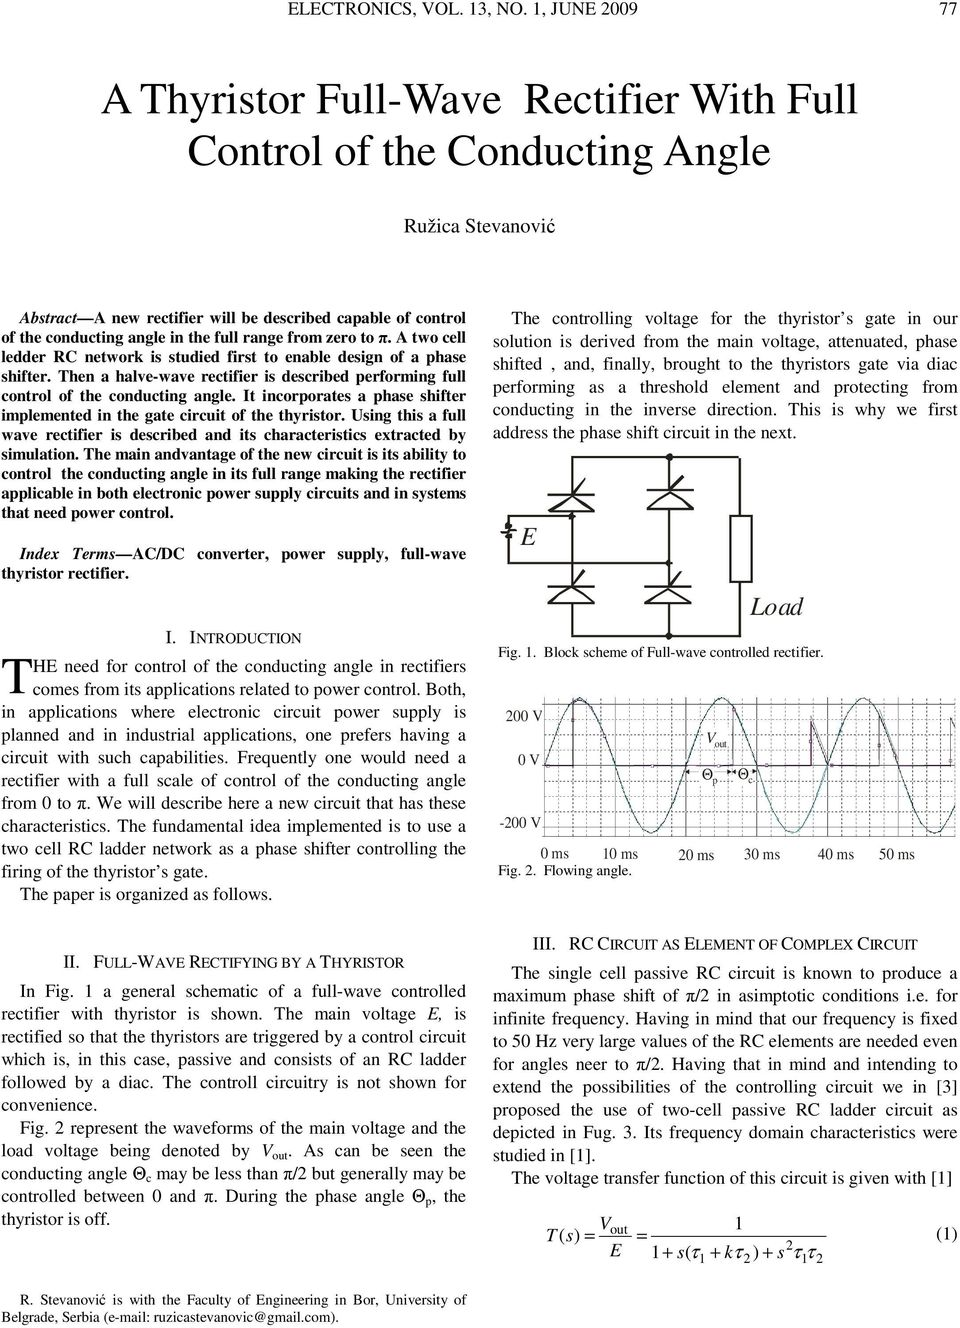 A Thyristor Full Wave Rectifier With Control Of The Conducting Triac Voltage Controller Public Circuit Online Simulator Range From Zero To Two Cell Ledder C Network Is Studied First